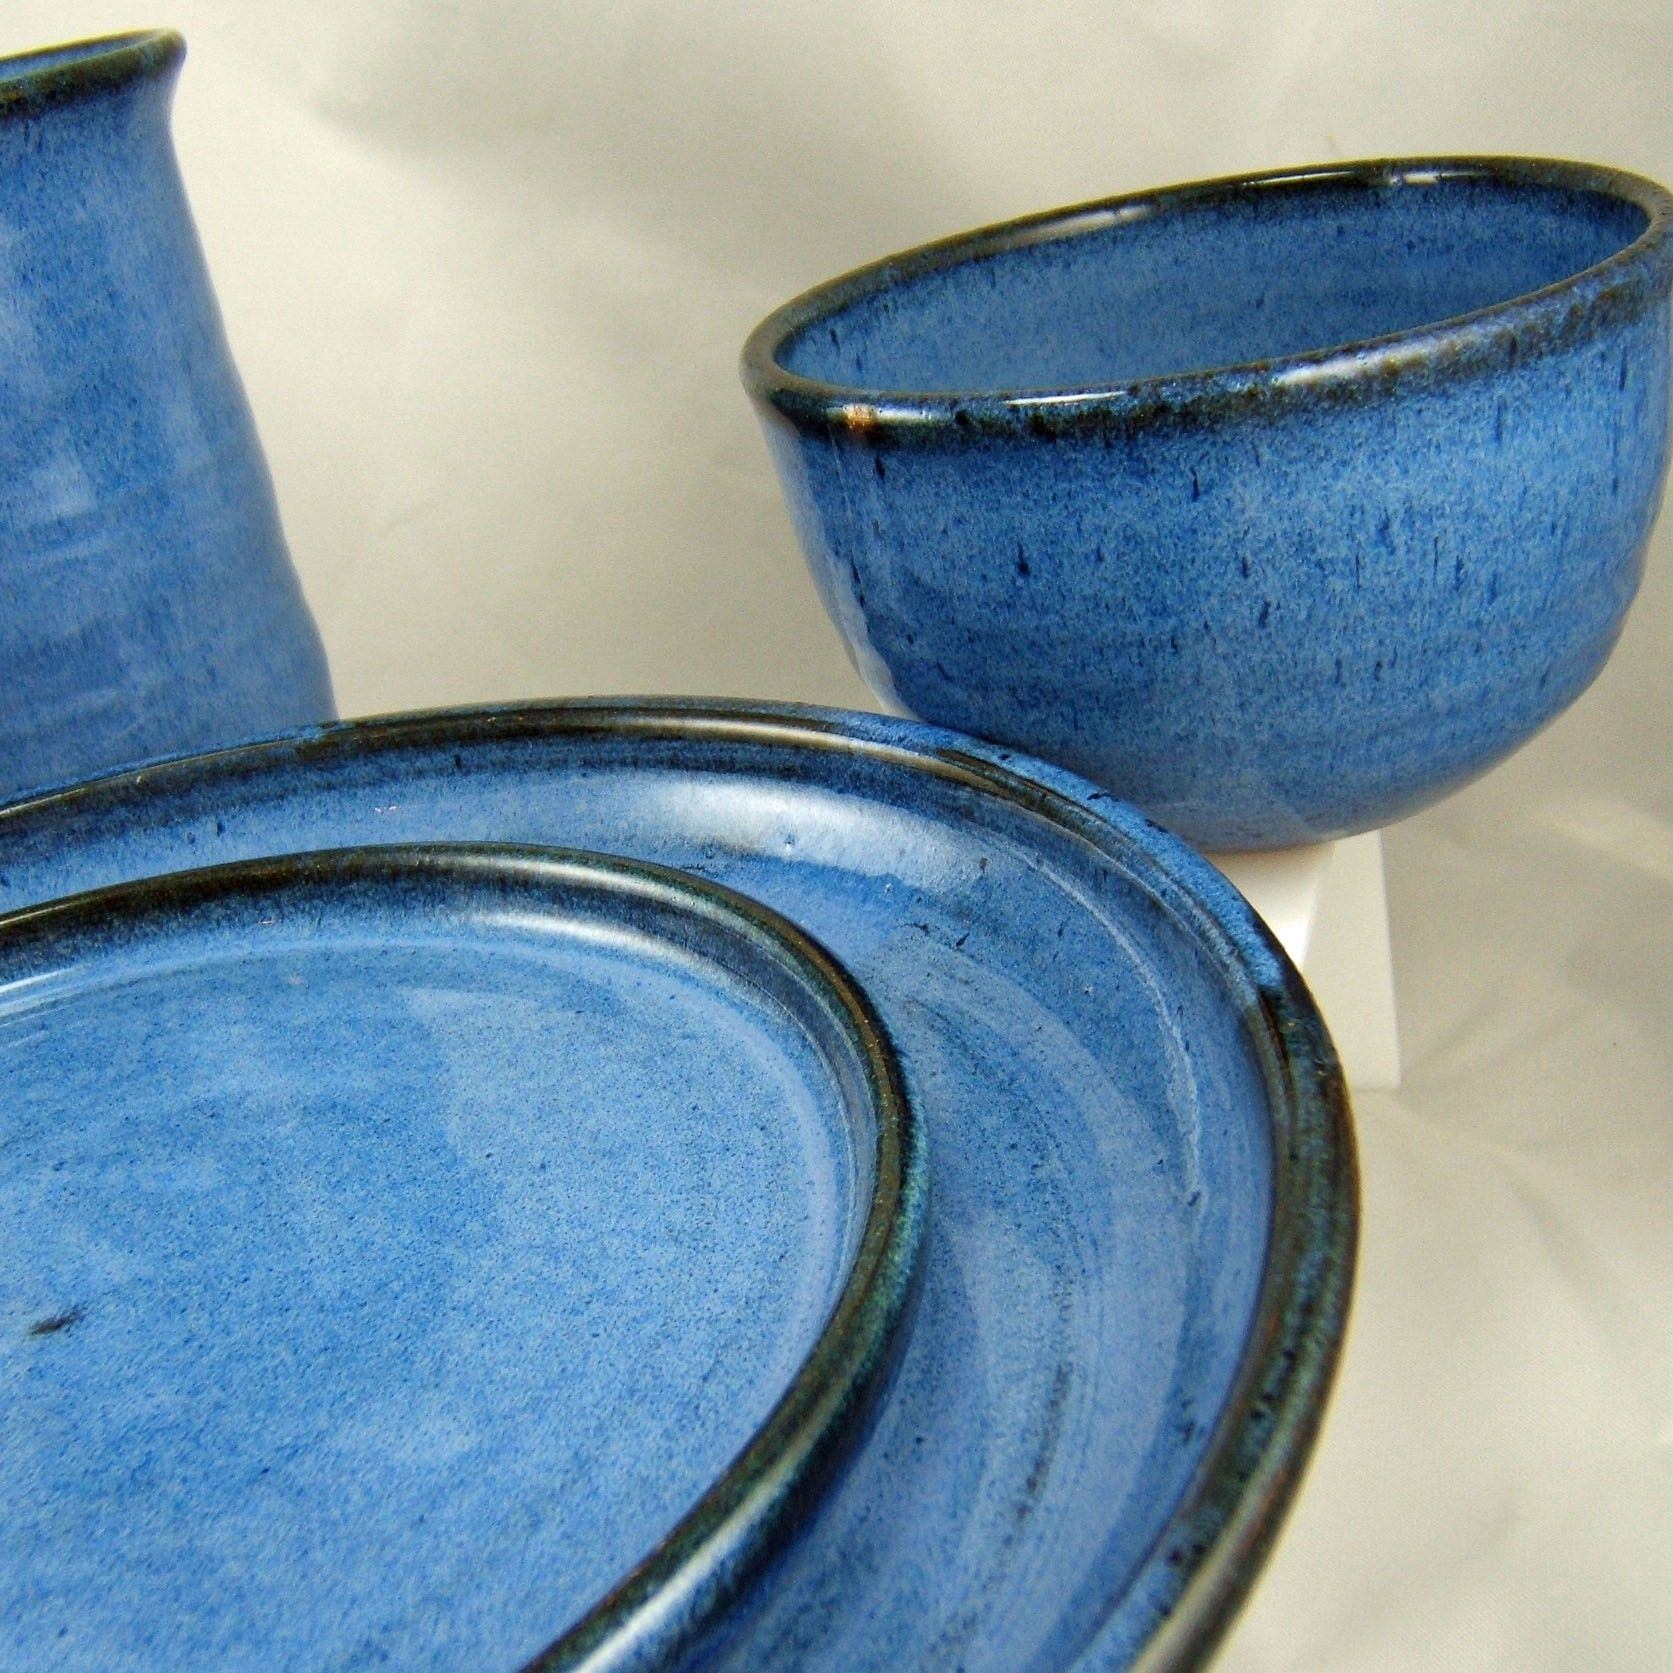 Plate Dinner One Bright Blue Ceramic Stoneware Pottery Dinnerware Clay  Pottery Plate Settings Ceramic Plates Stoneware Plates Play Plates